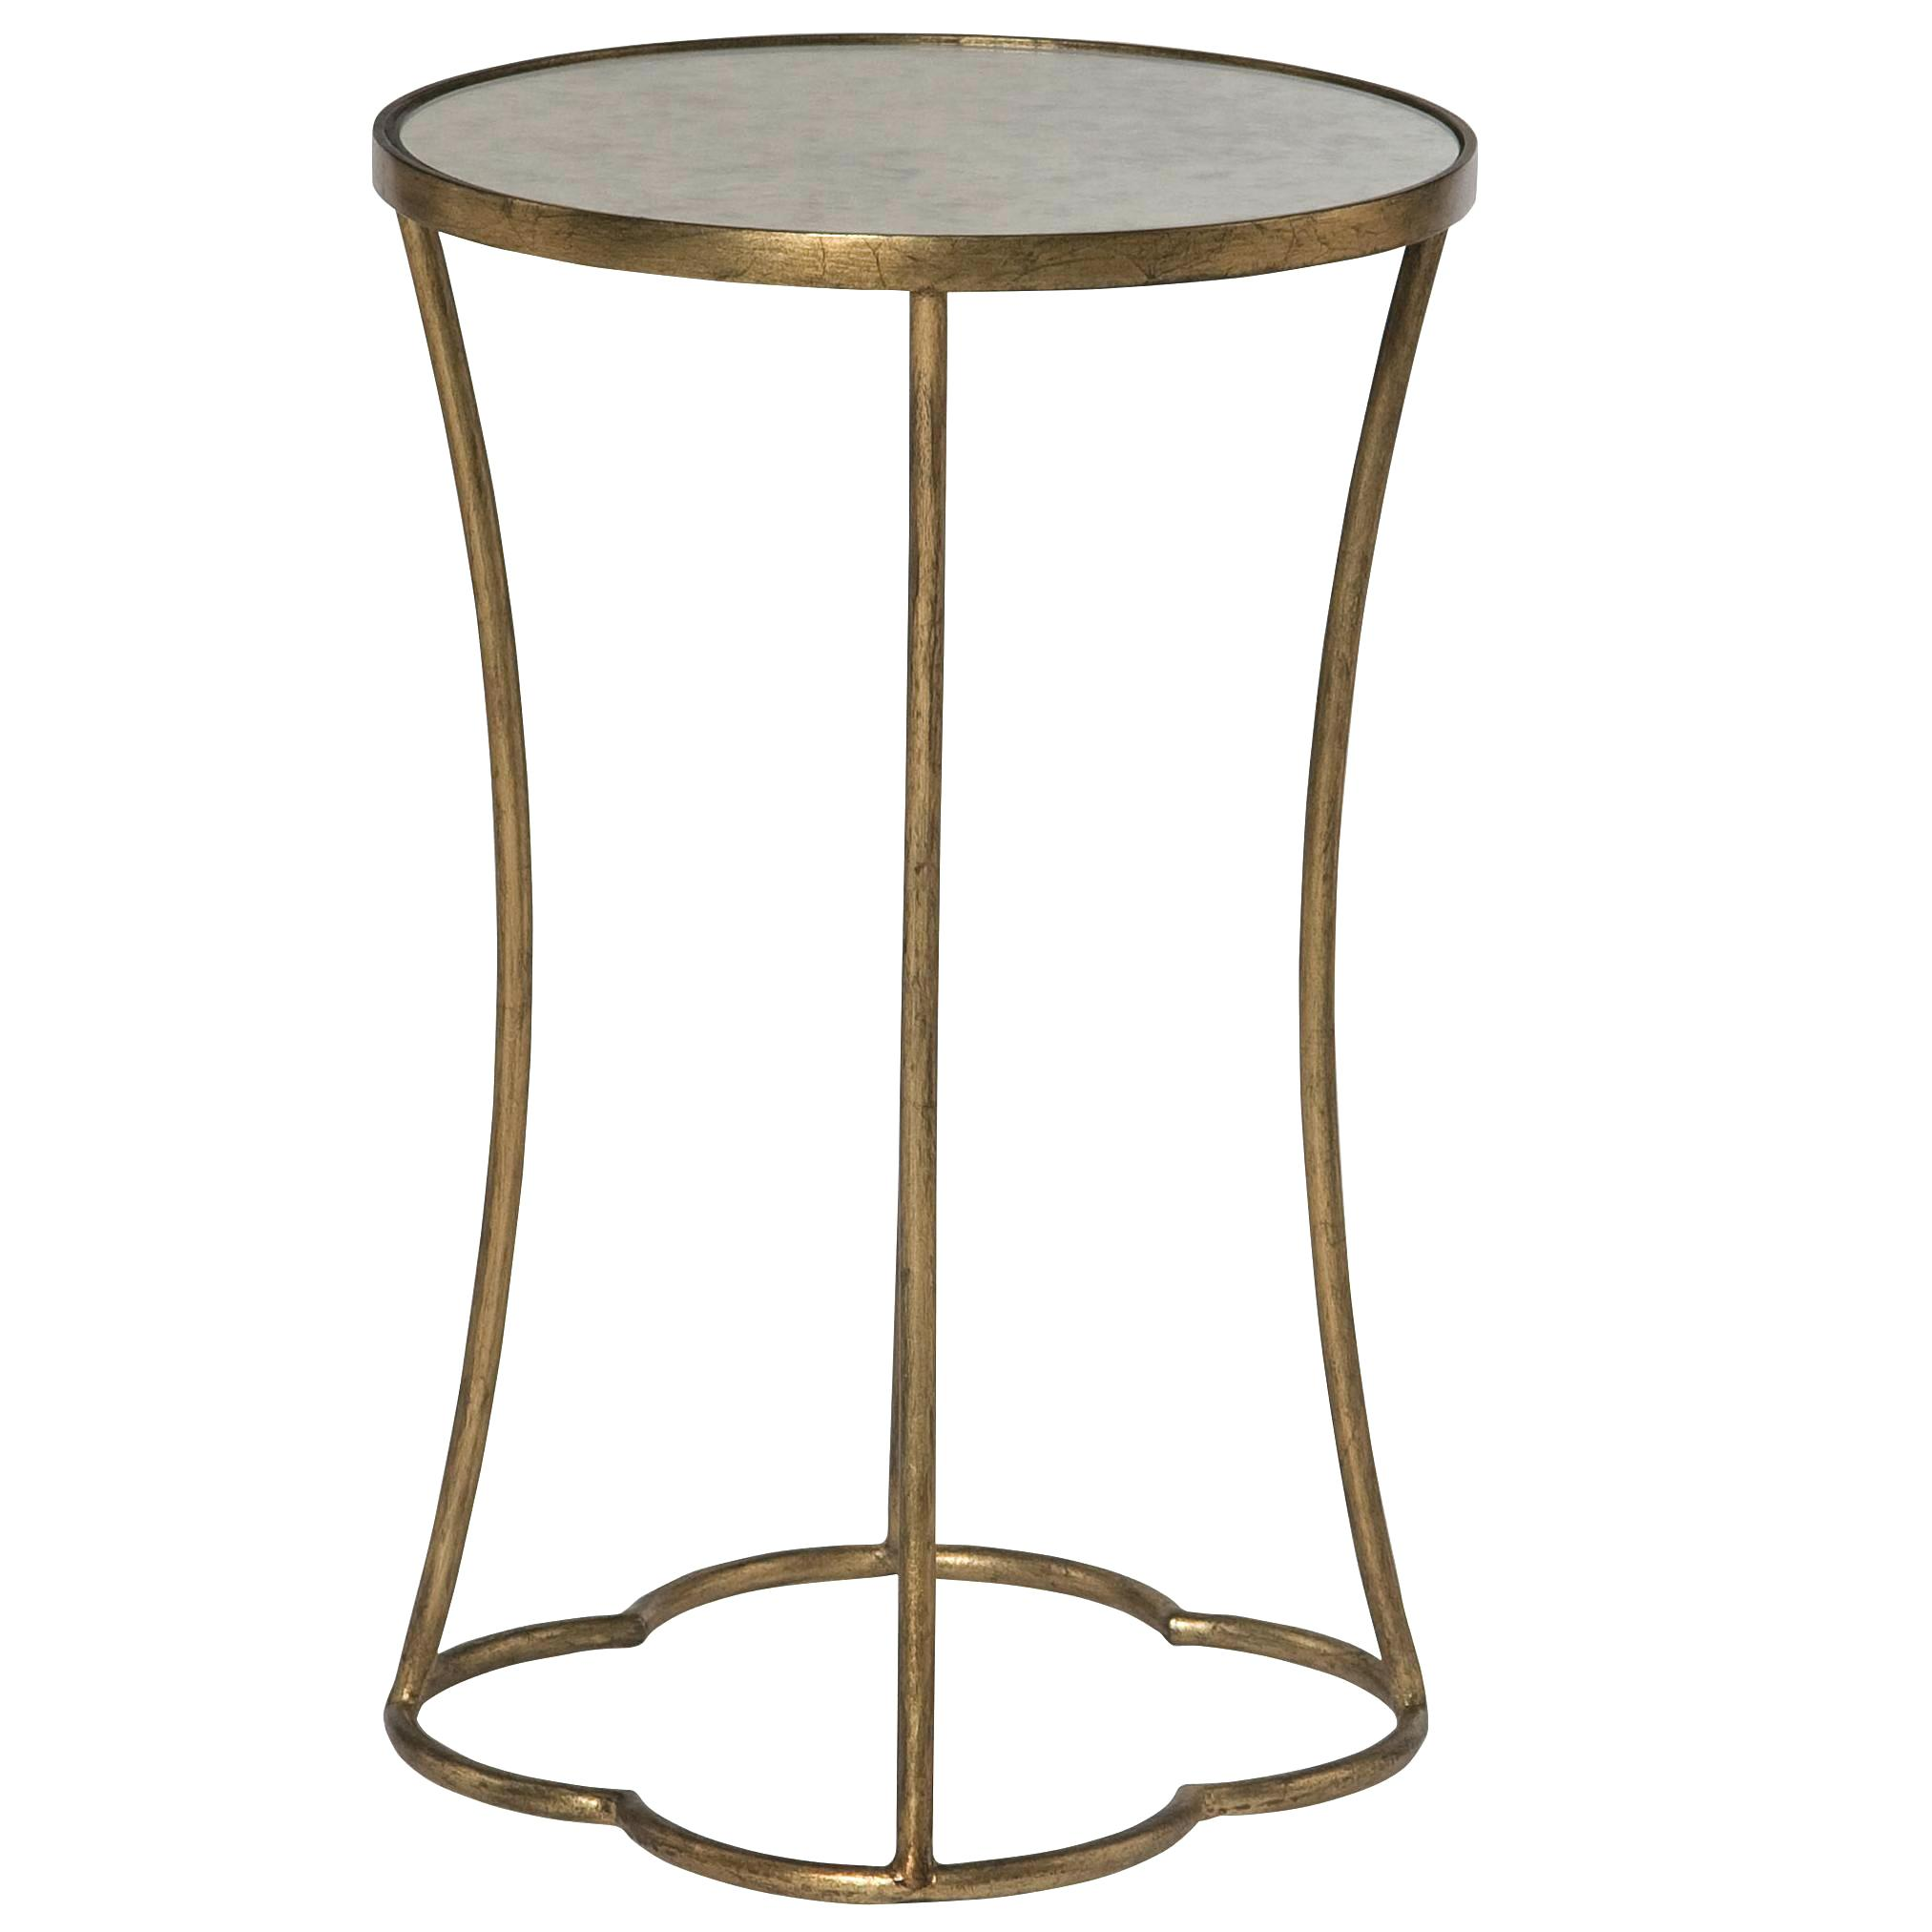 mirrored round accent table medium size mirror coffee interiors accents kylie with antique top monarch silver bourse michelin tabletop gas grill target yellow side wood end metal